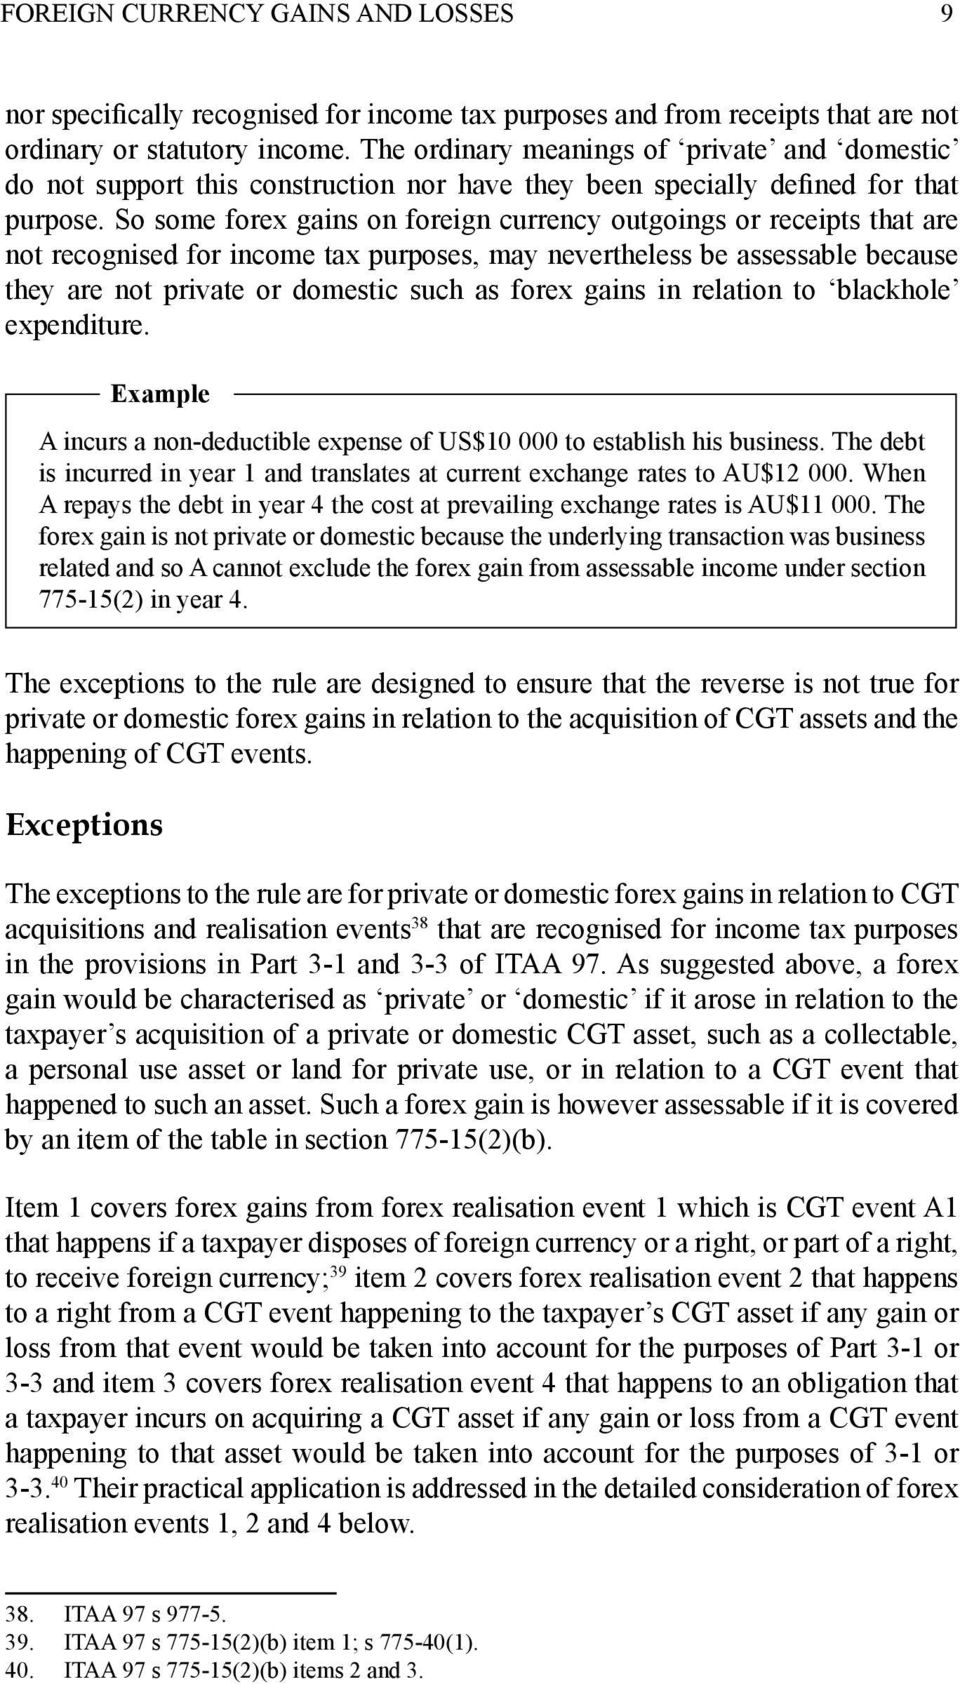 Tax deduction forex trade